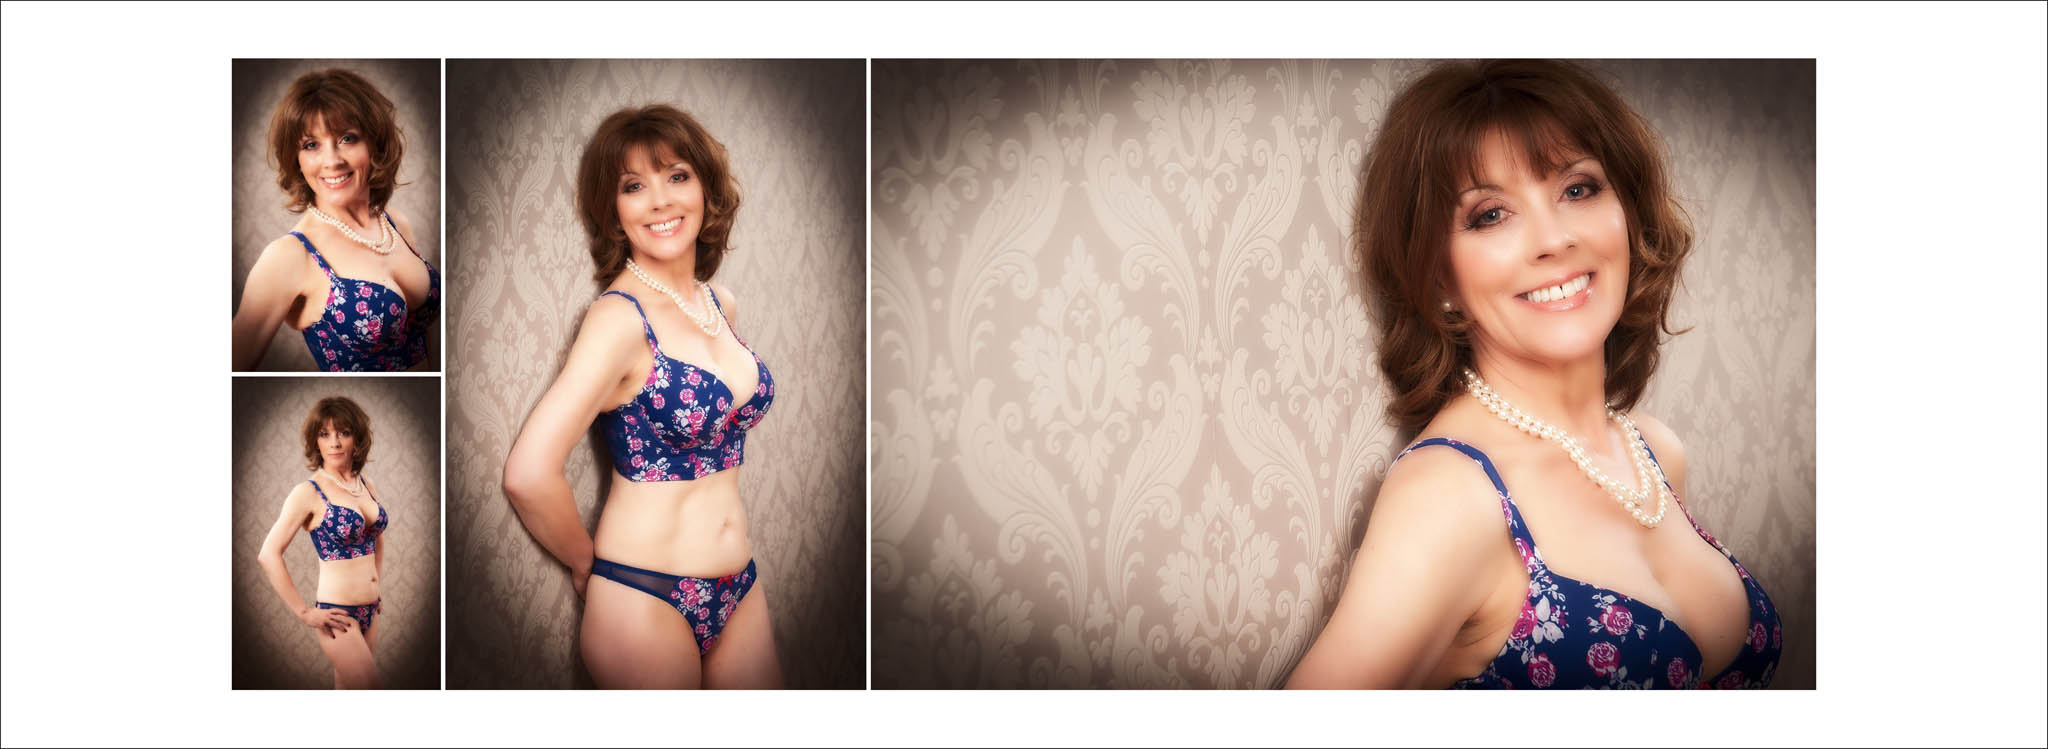 Copy of album pages from recent boudoir shoot